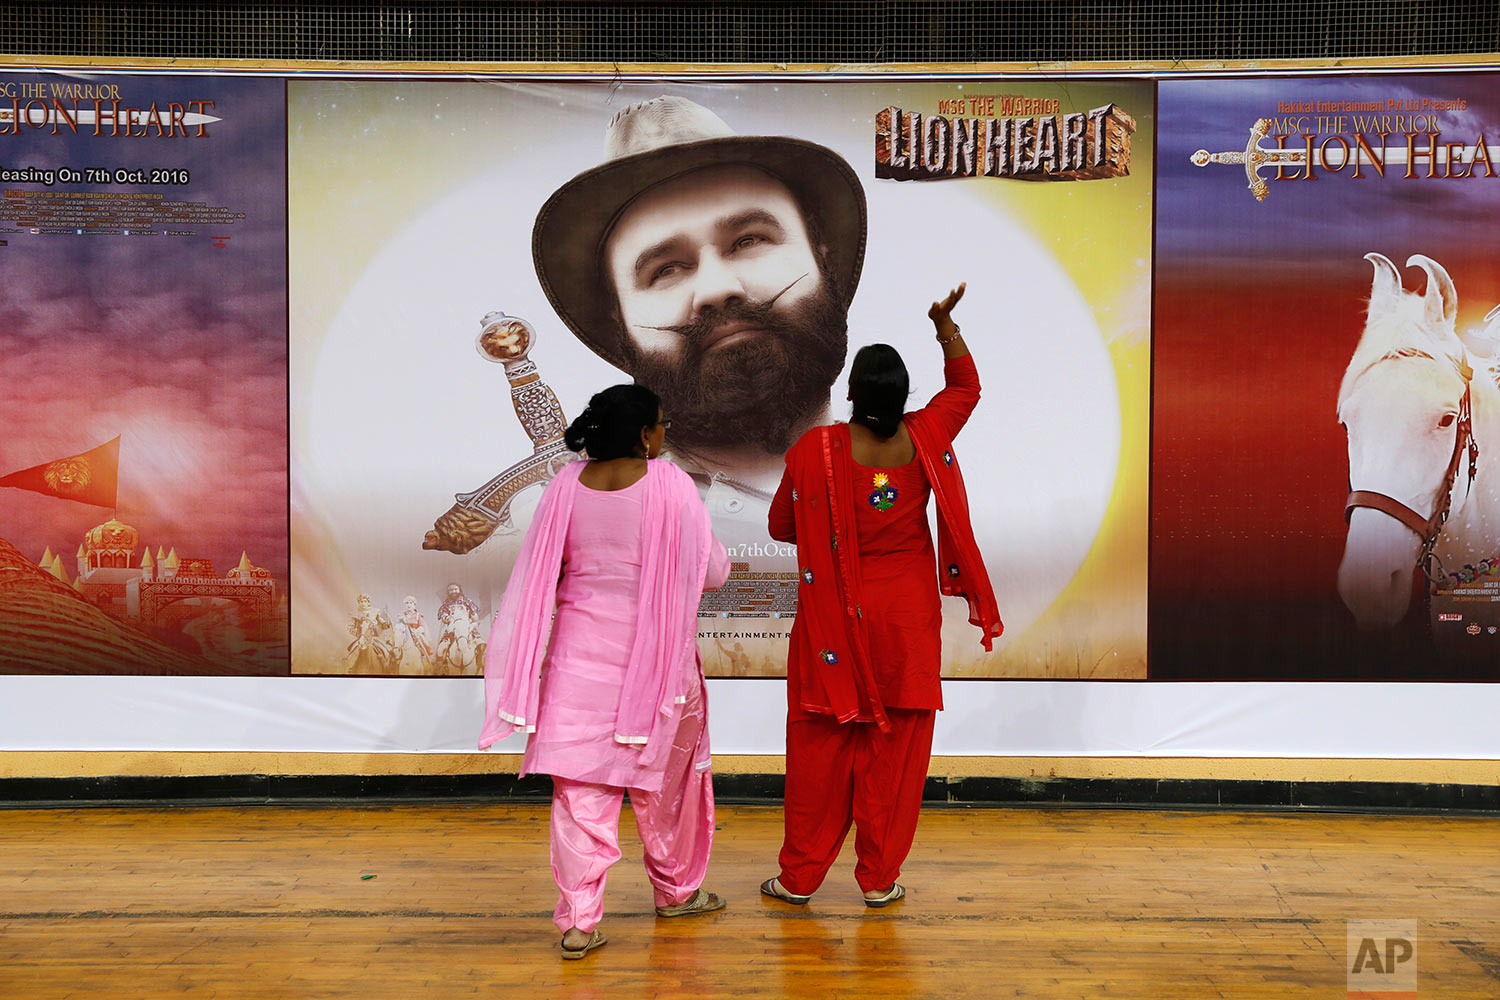 "In this Oct. 5, 2016 photo, devotees of Indian spiritual guru, who calls himself Dr. Saint Gurmeet Singh Ram Rahim Insan, stand near a poster of his film ""MSG: The Warrior Lion Heart,"" in New Delhi, India. (AP Photo/Tsering Topgyal)"